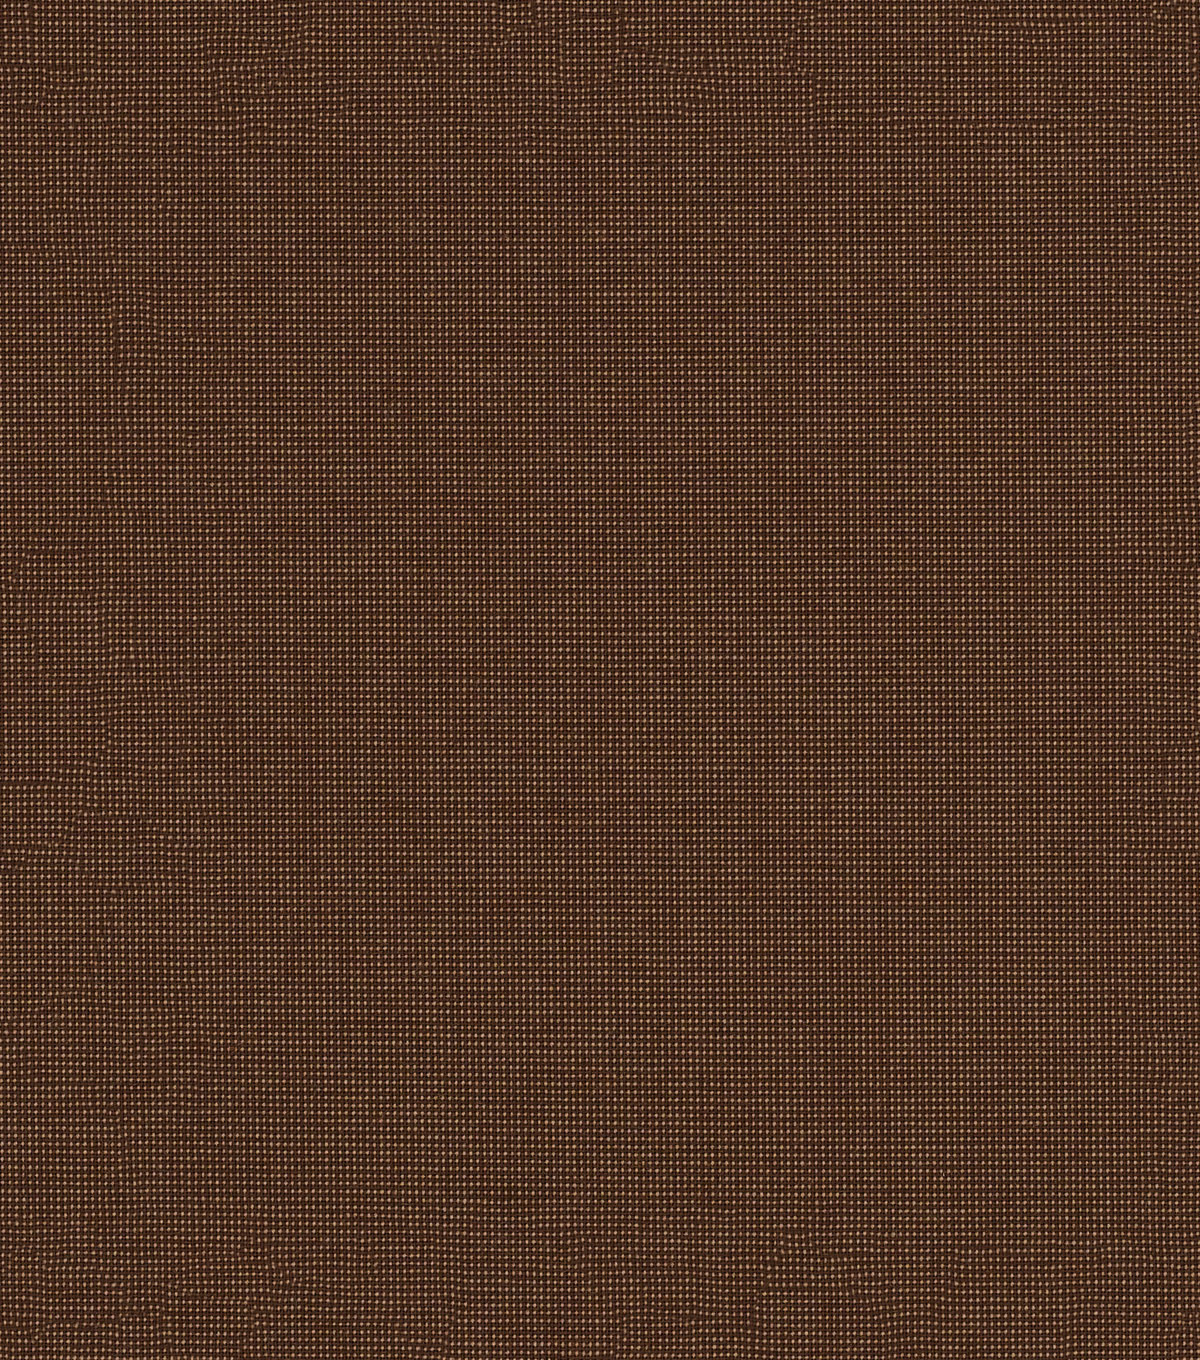 Sunbrella Solid Outdoor Fabric 54\u0022-Spectrum Coffee